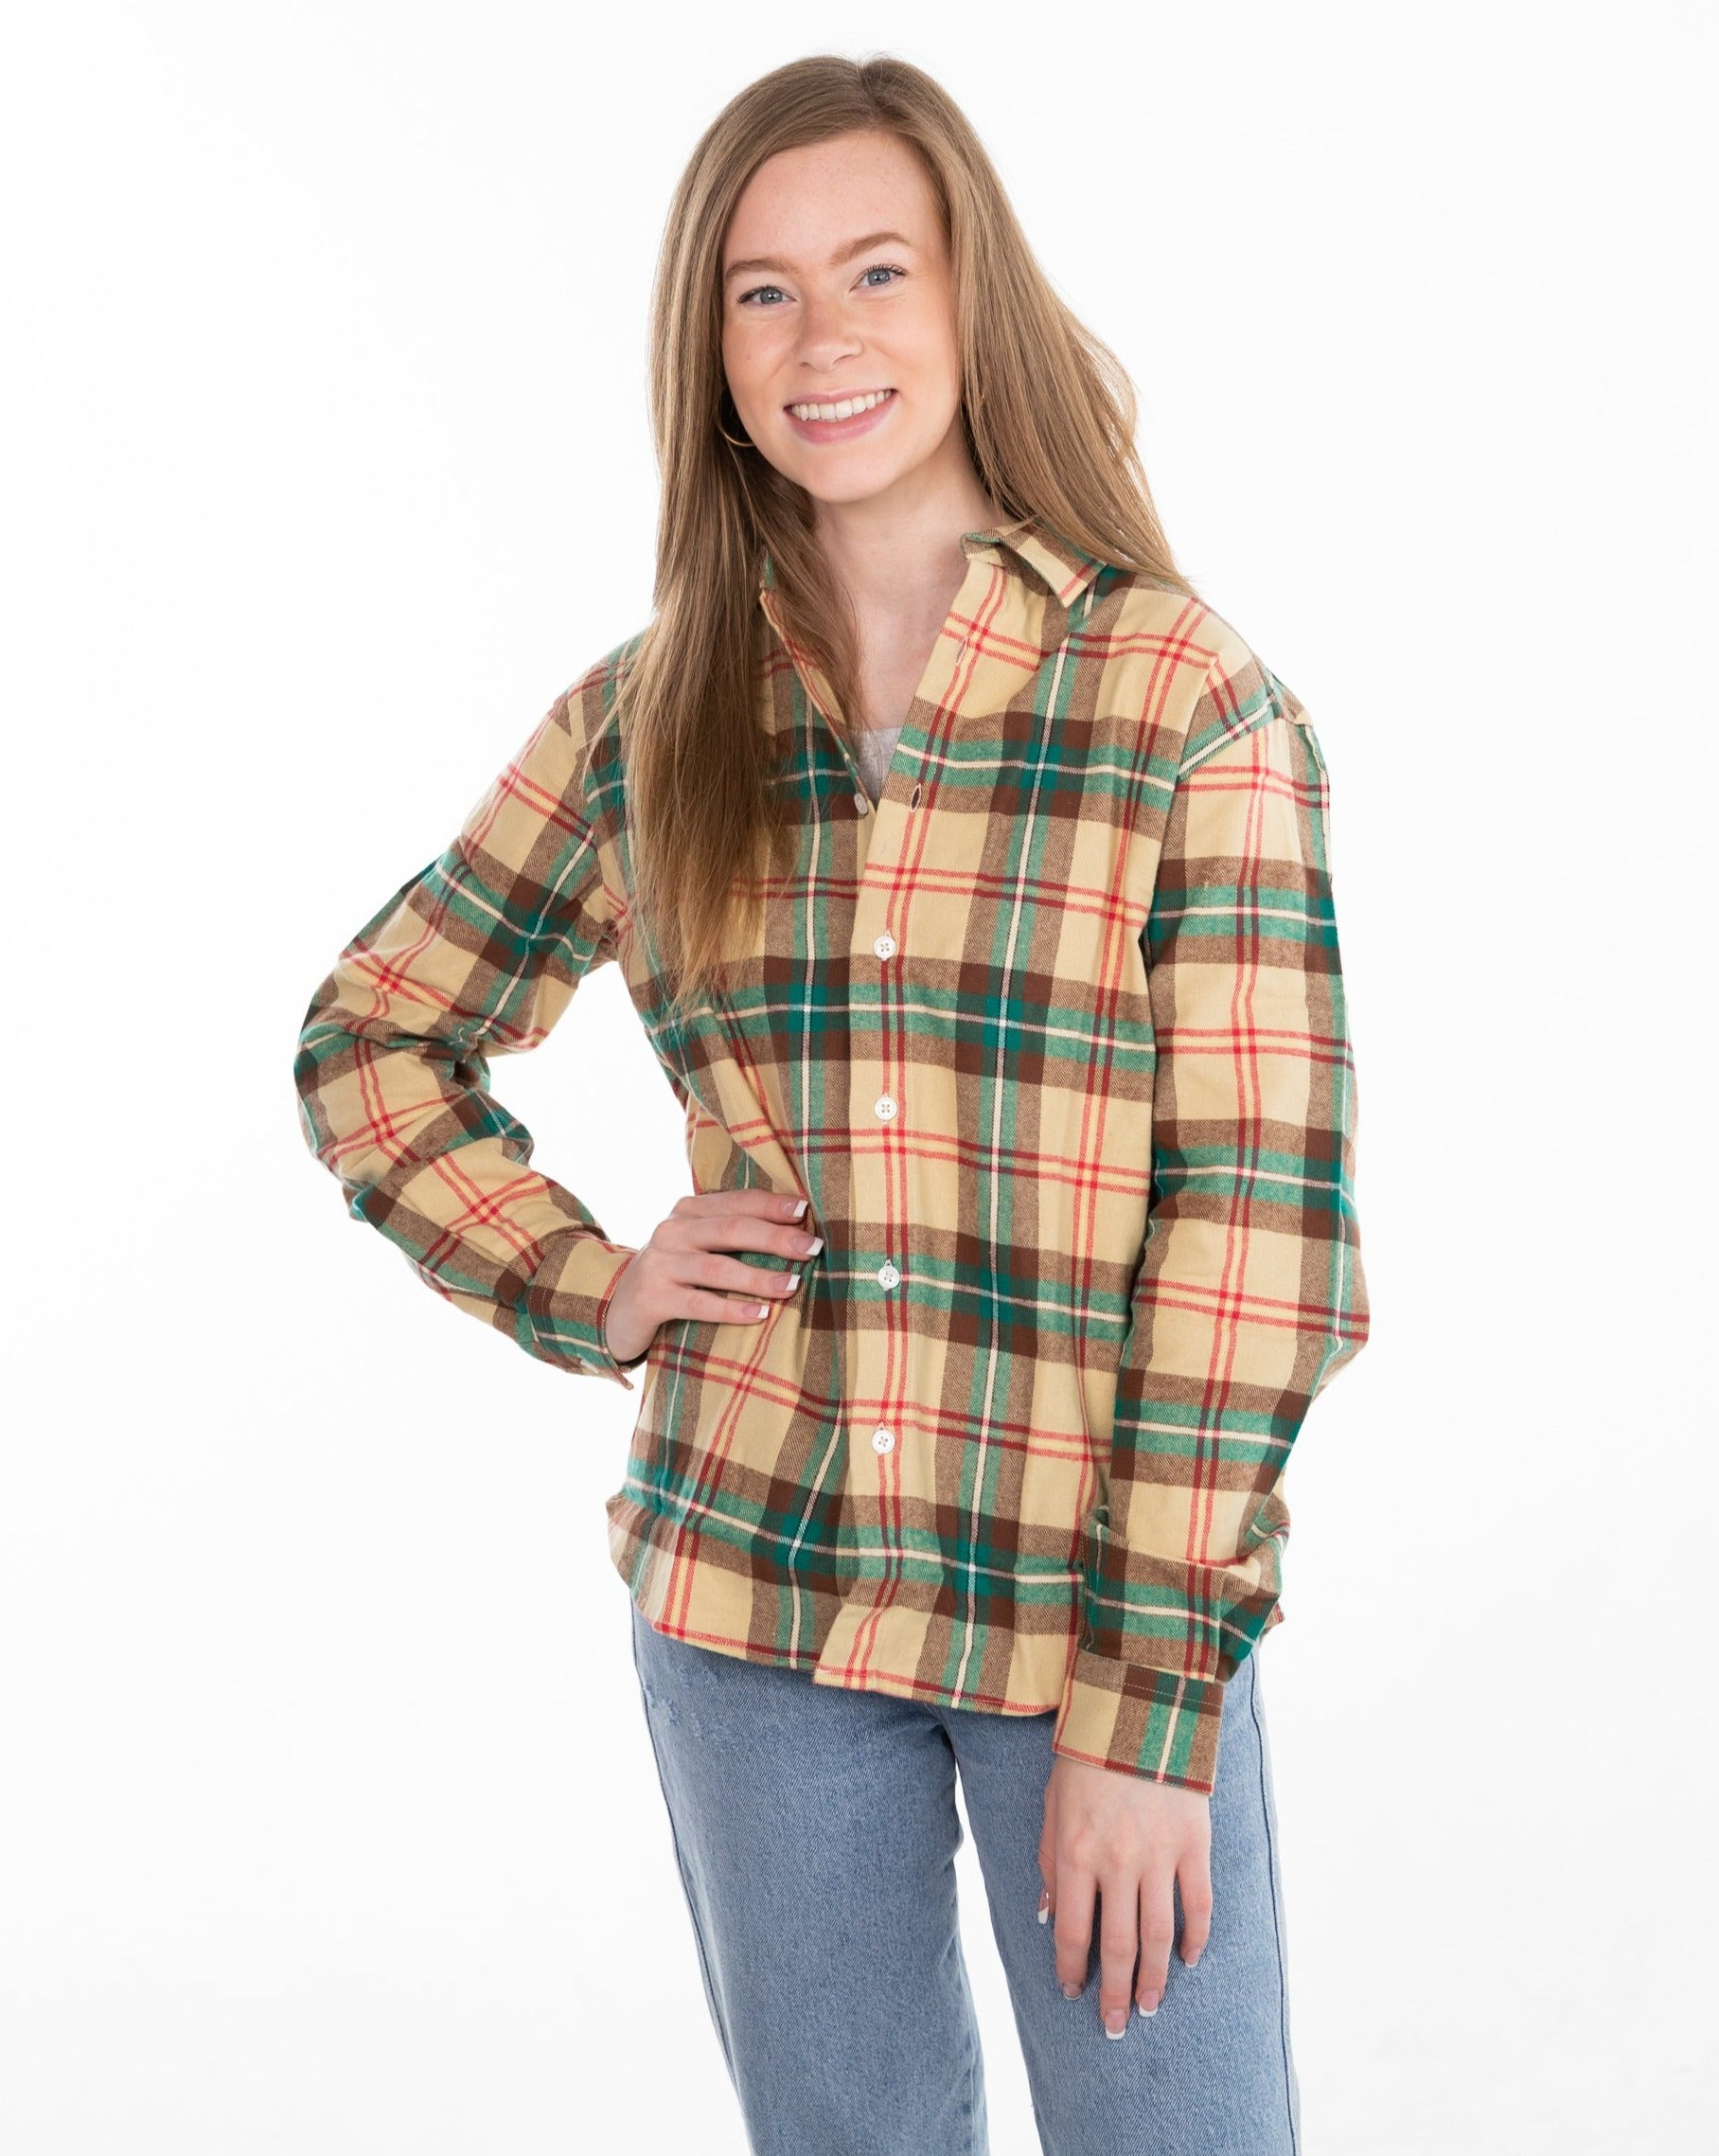 FLAT // Official Sask Tartan / Women's Preshrunk / Version 2.0